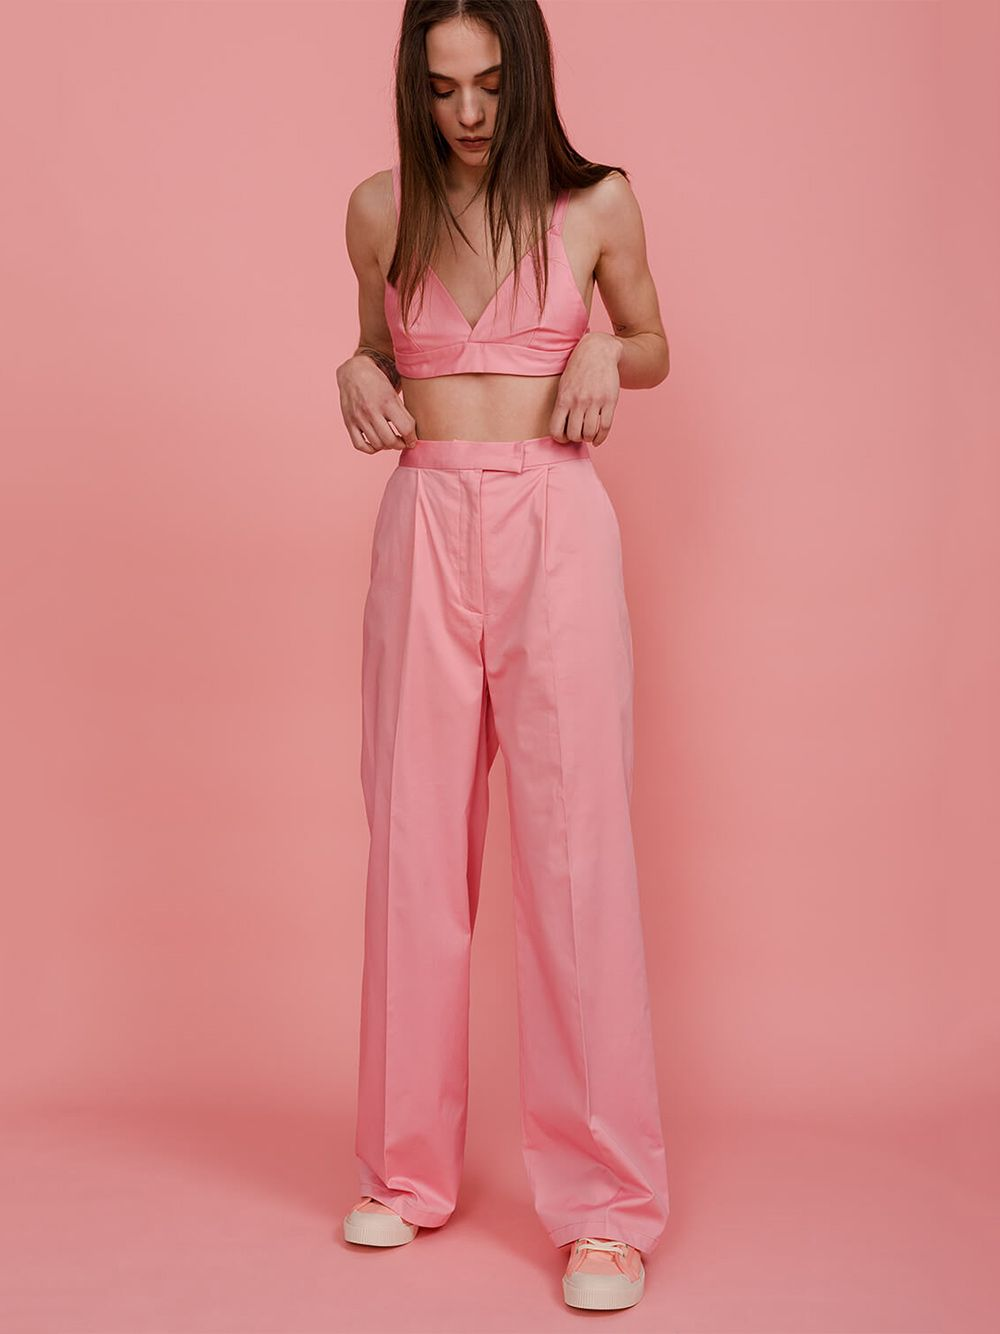 Bralette Curto Orchid Pink